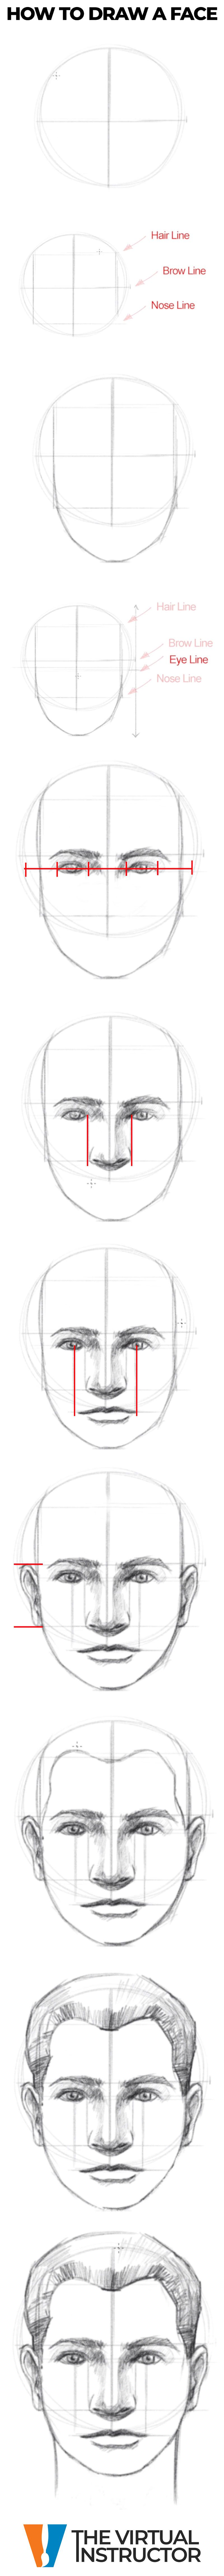 How To Draw A Face Step By Step Art Drawings Sketches Simple Art Worksheets Color Pencil Art